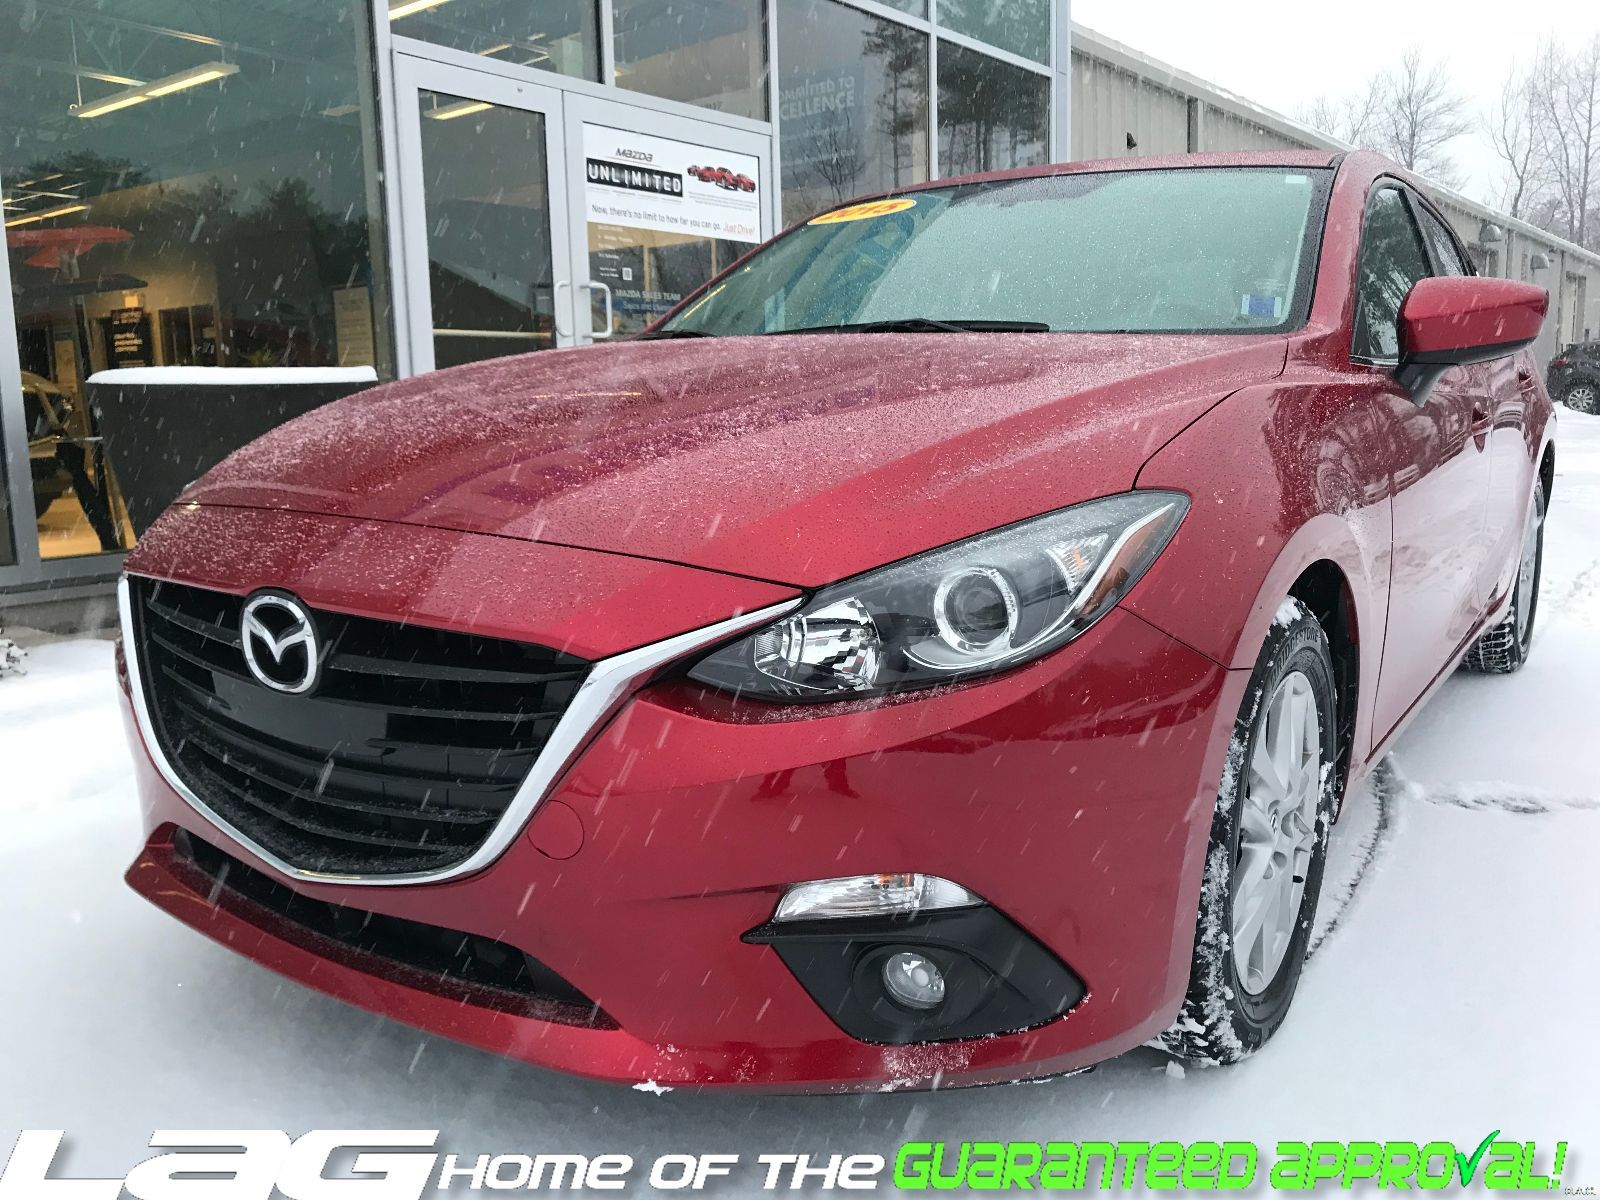 madison htm in discounts sales week this print ads s mazda wi